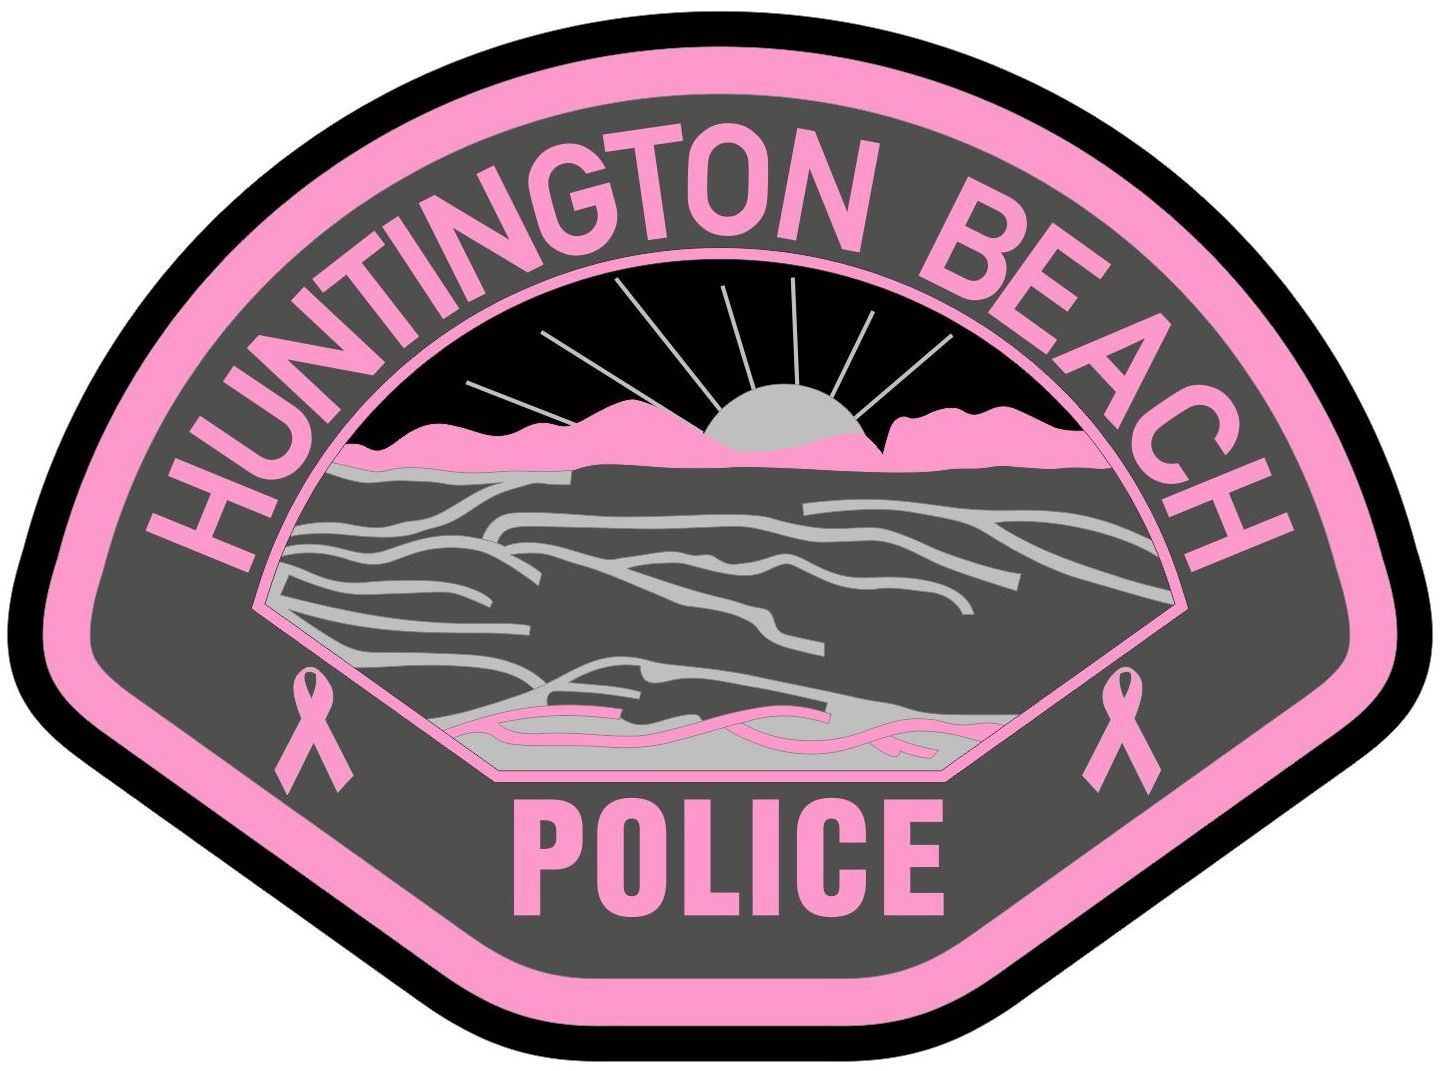 Huntington Beach Police (CA) - Pink Patch artwork.jpg